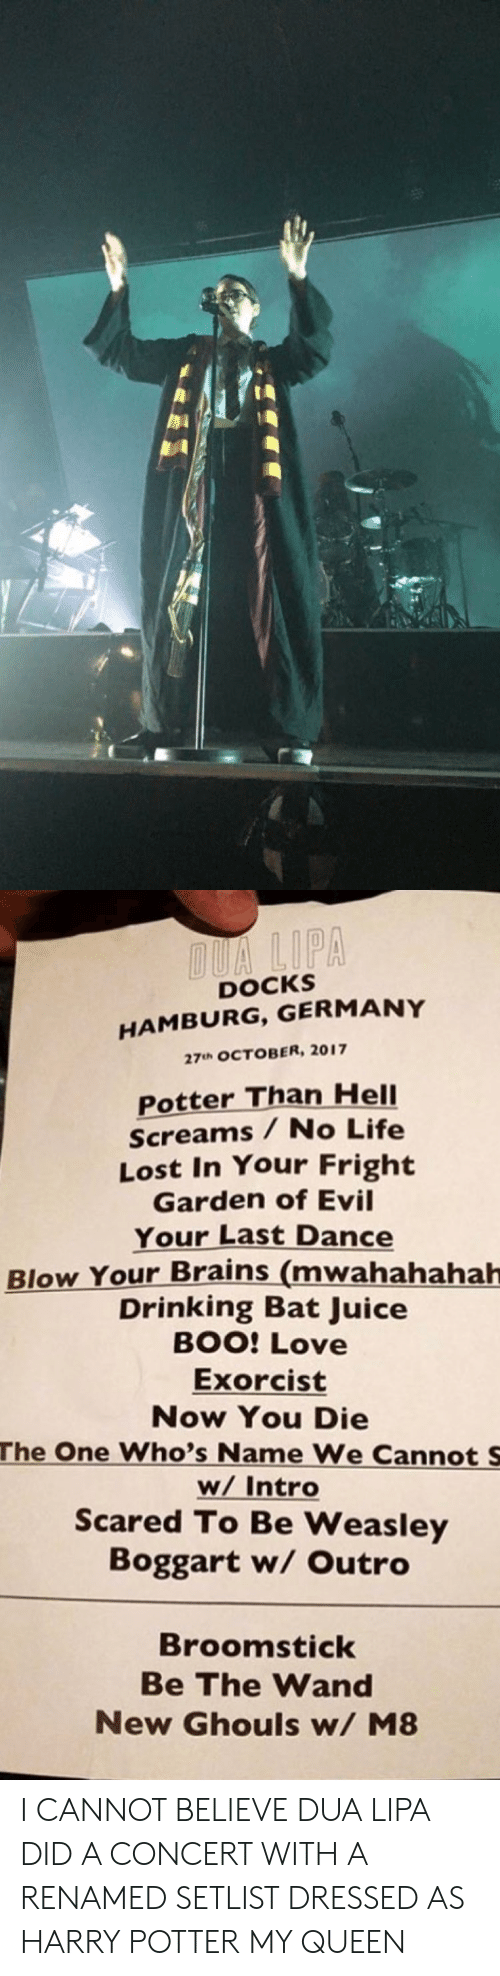 ghouls: DOCKS  HAMBURG, GERMANY  27uh OCTOBER, 2017  Potter Than HelI  Screams / No Life  Lost In Your Fright  Garden of Evil  Your Last Dance  Blow Your Brains (mwahahahah  Drinking Bat Juice  BOO: Love  Exorcist  Now You Die  The One Who's Name We Cannot S  w/ Intro  Scared To Be Weasley  Boggart w/ Outro  Broomstick  Be The Wand  New Ghouls w/ M8 I CANNOT BELIEVE DUA LIPA DID A CONCERT WITH A RENAMED SETLIST DRESSED AS HARRY POTTER MY QUEEN